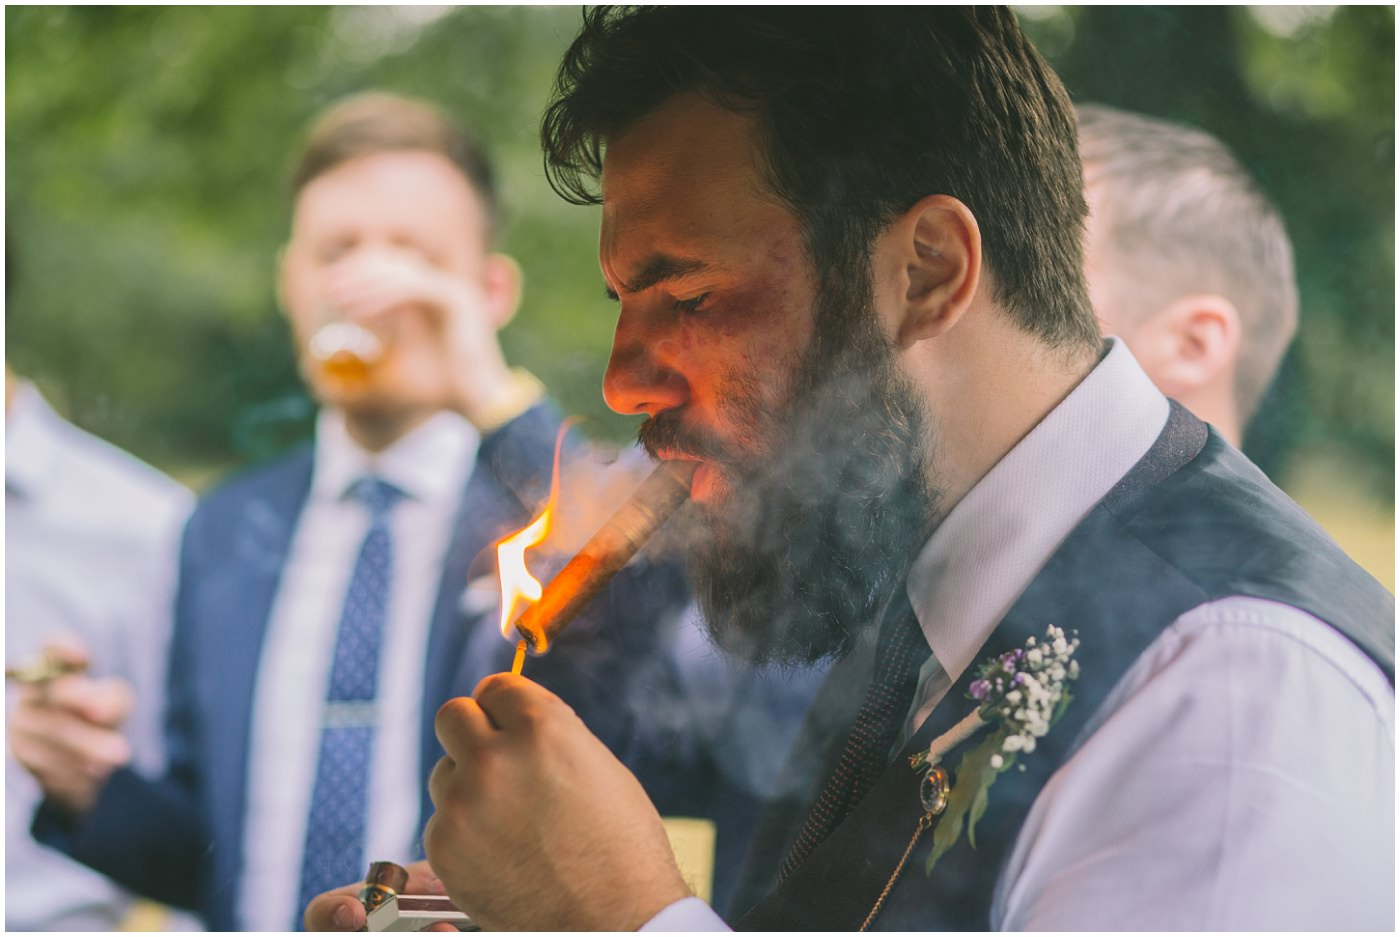 groomsman lights a cigar outside the venue